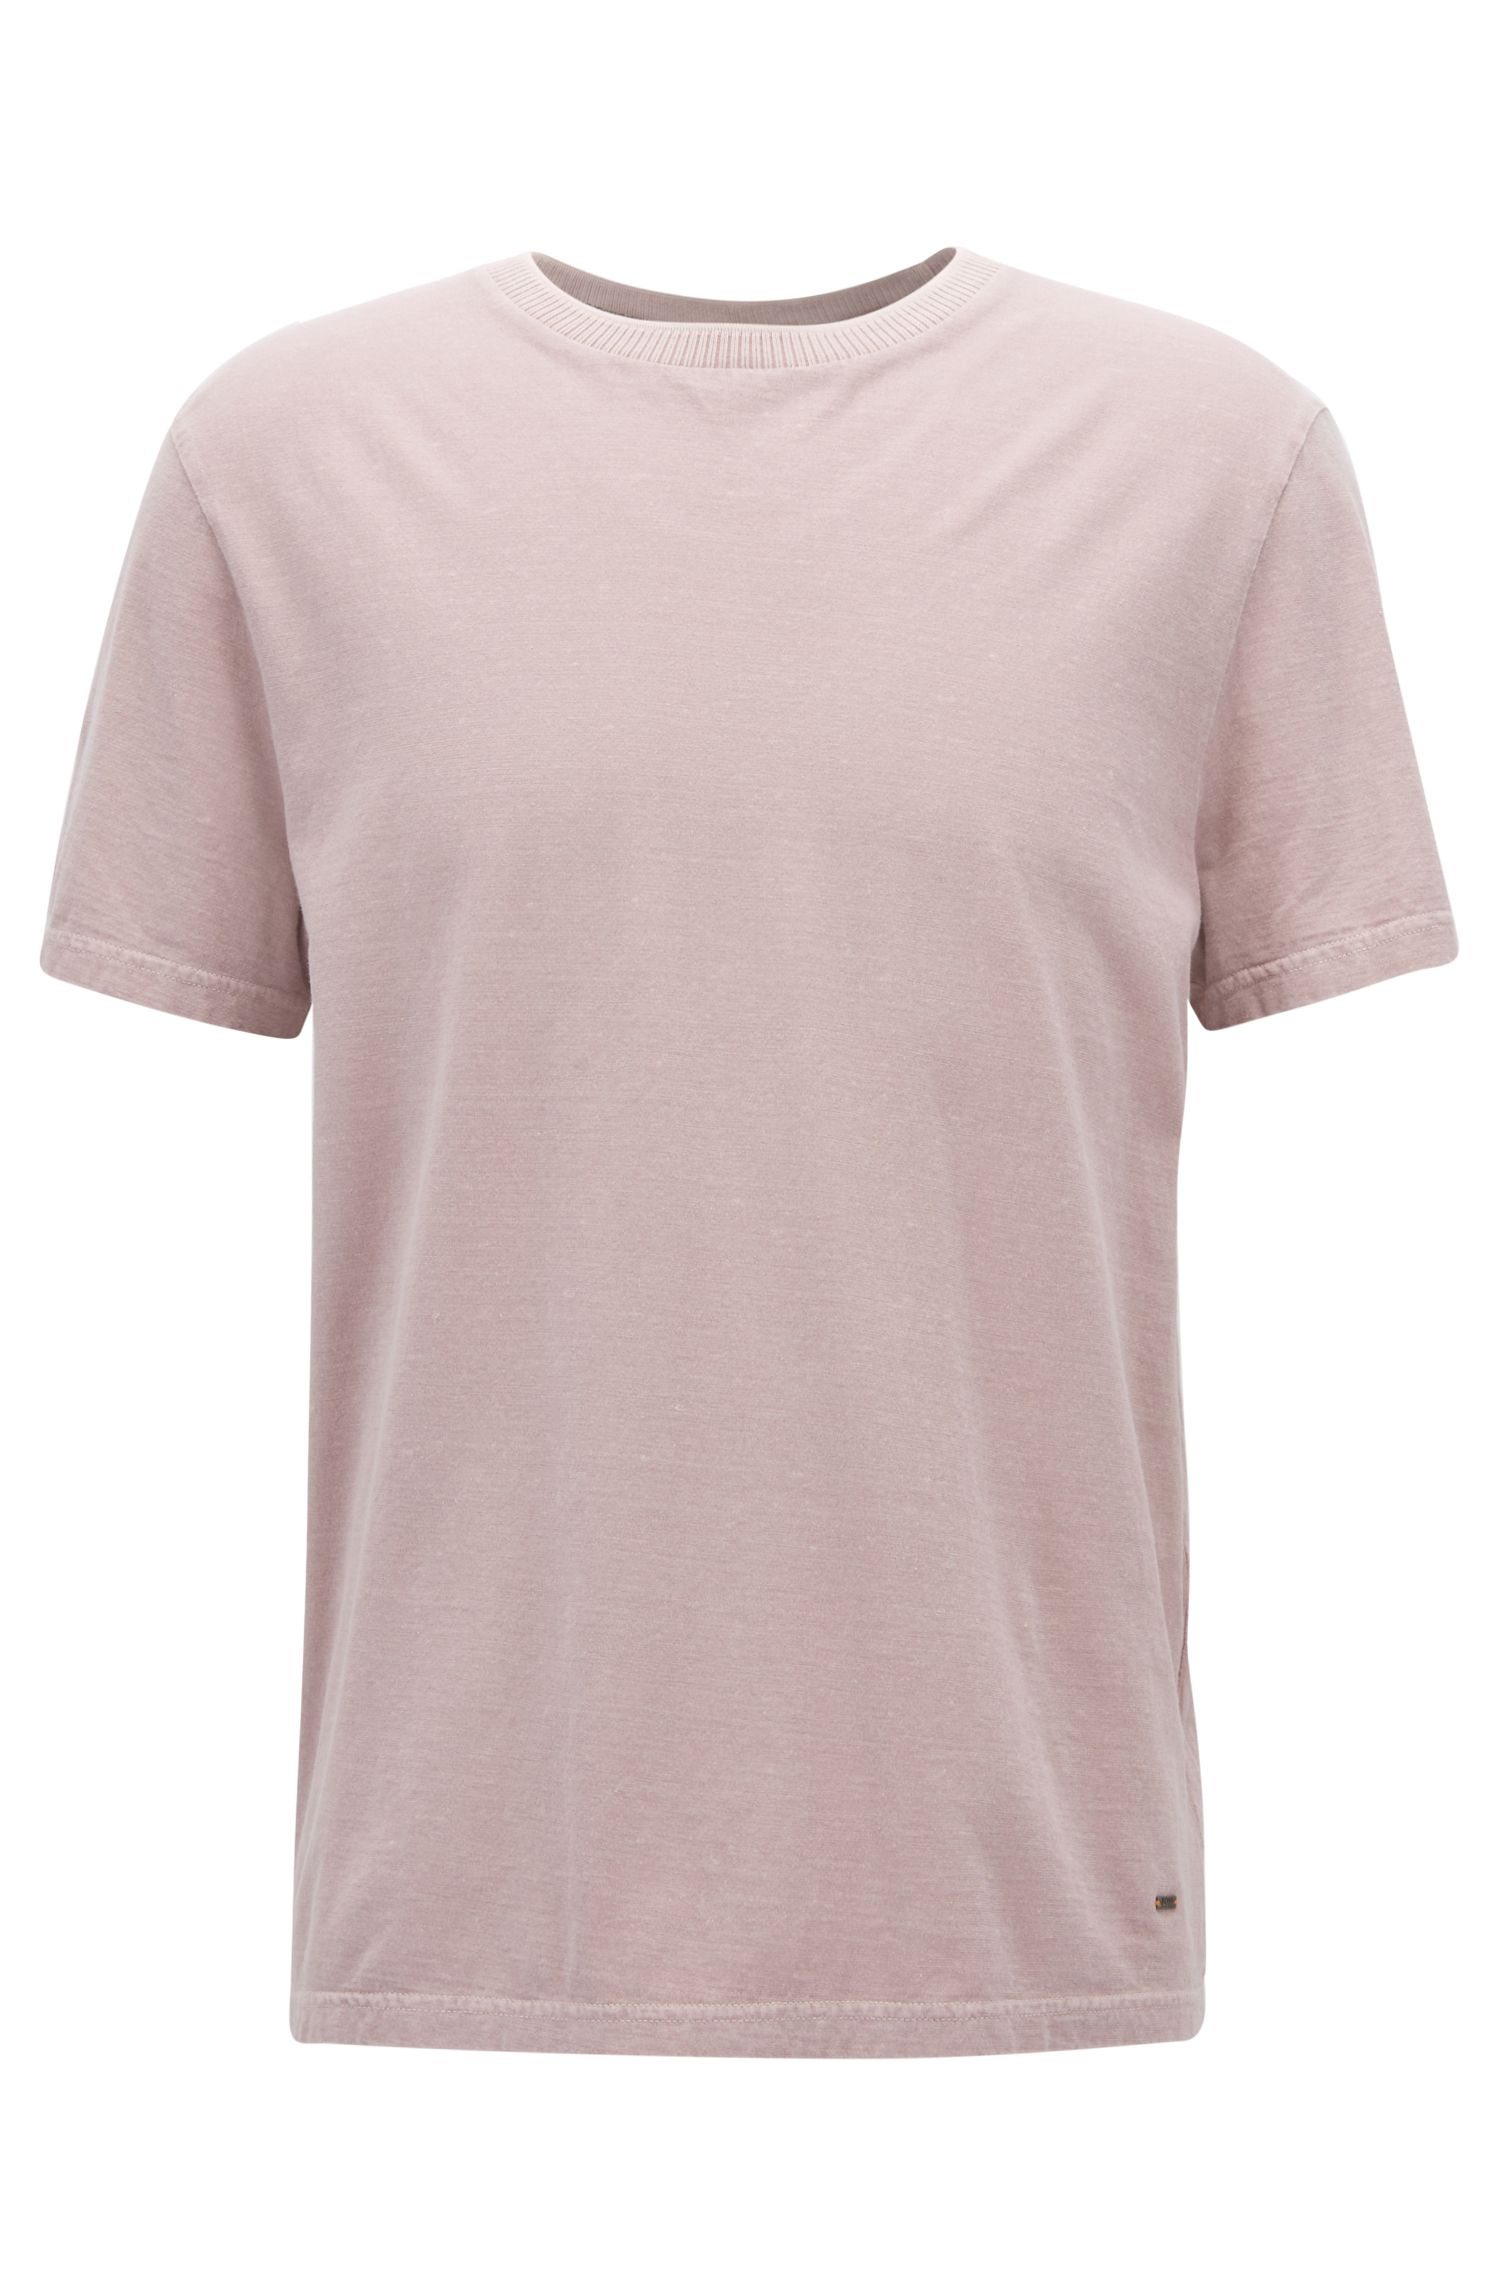 Relaxed-fit T-shirt in a washed slub-cotton blend